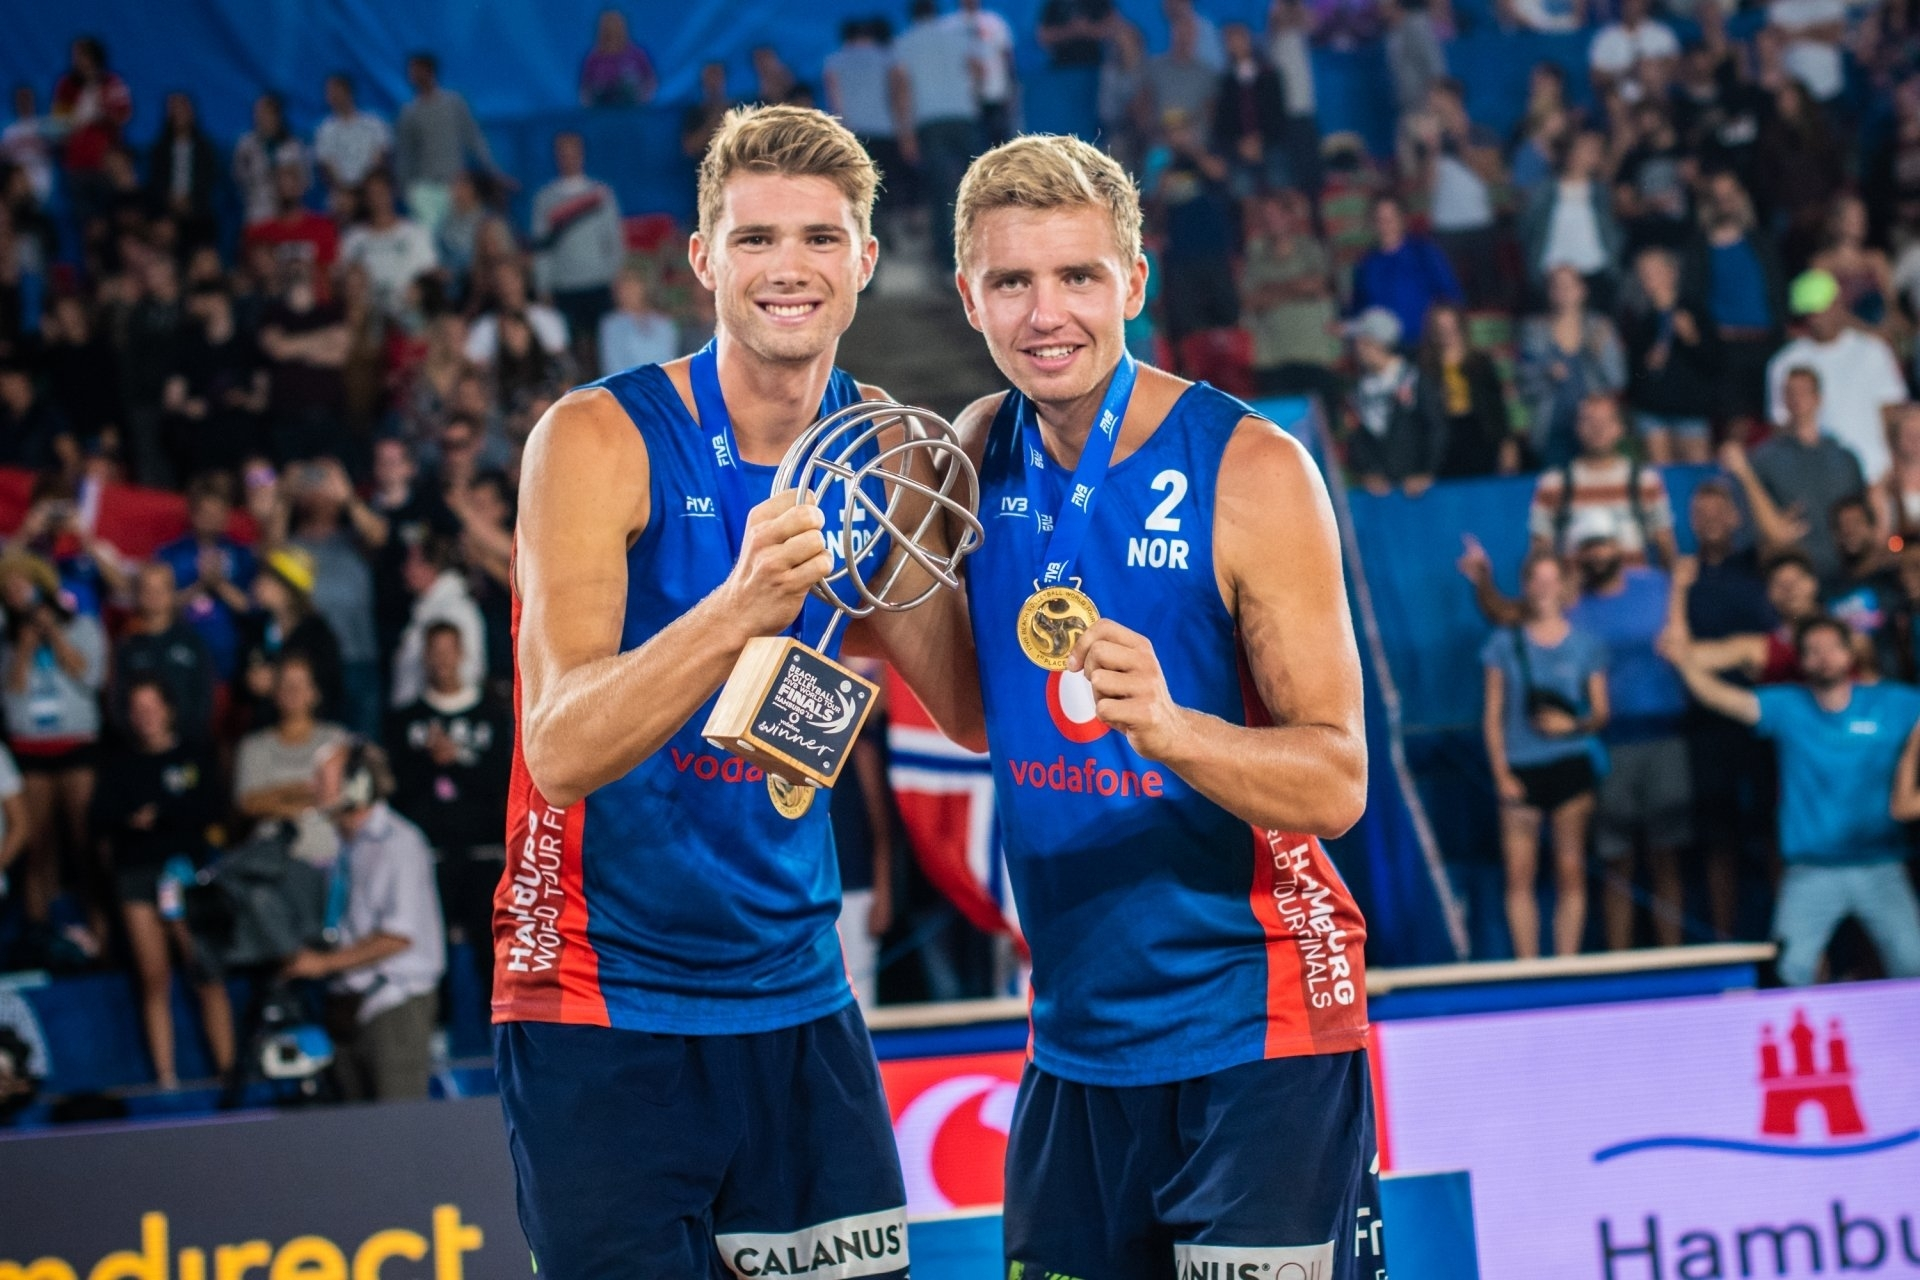 Anders and Christian celebrate their World Tour Finals gold